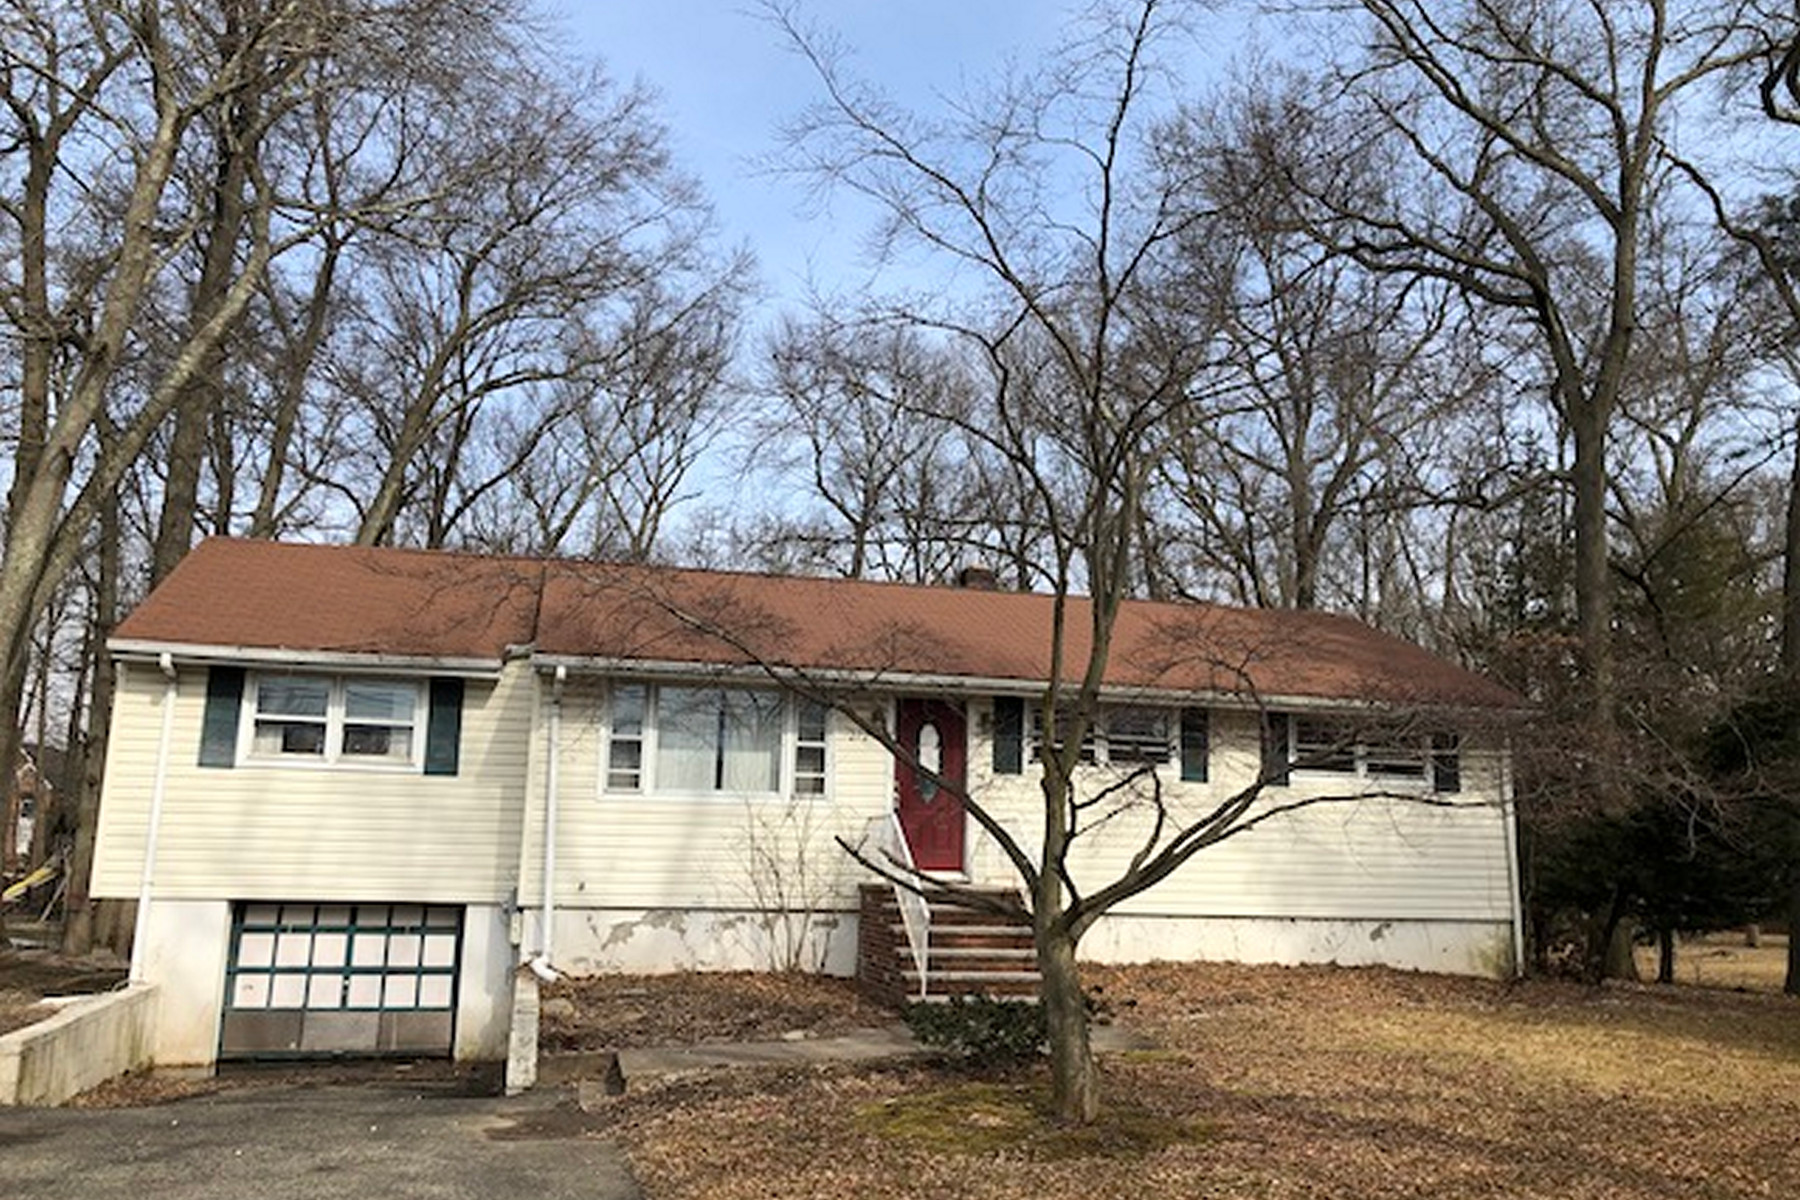 Single Family Homes for Active at Great Opportunity 272 Horseneck Road Fairfield, New Jersey 07004 United States